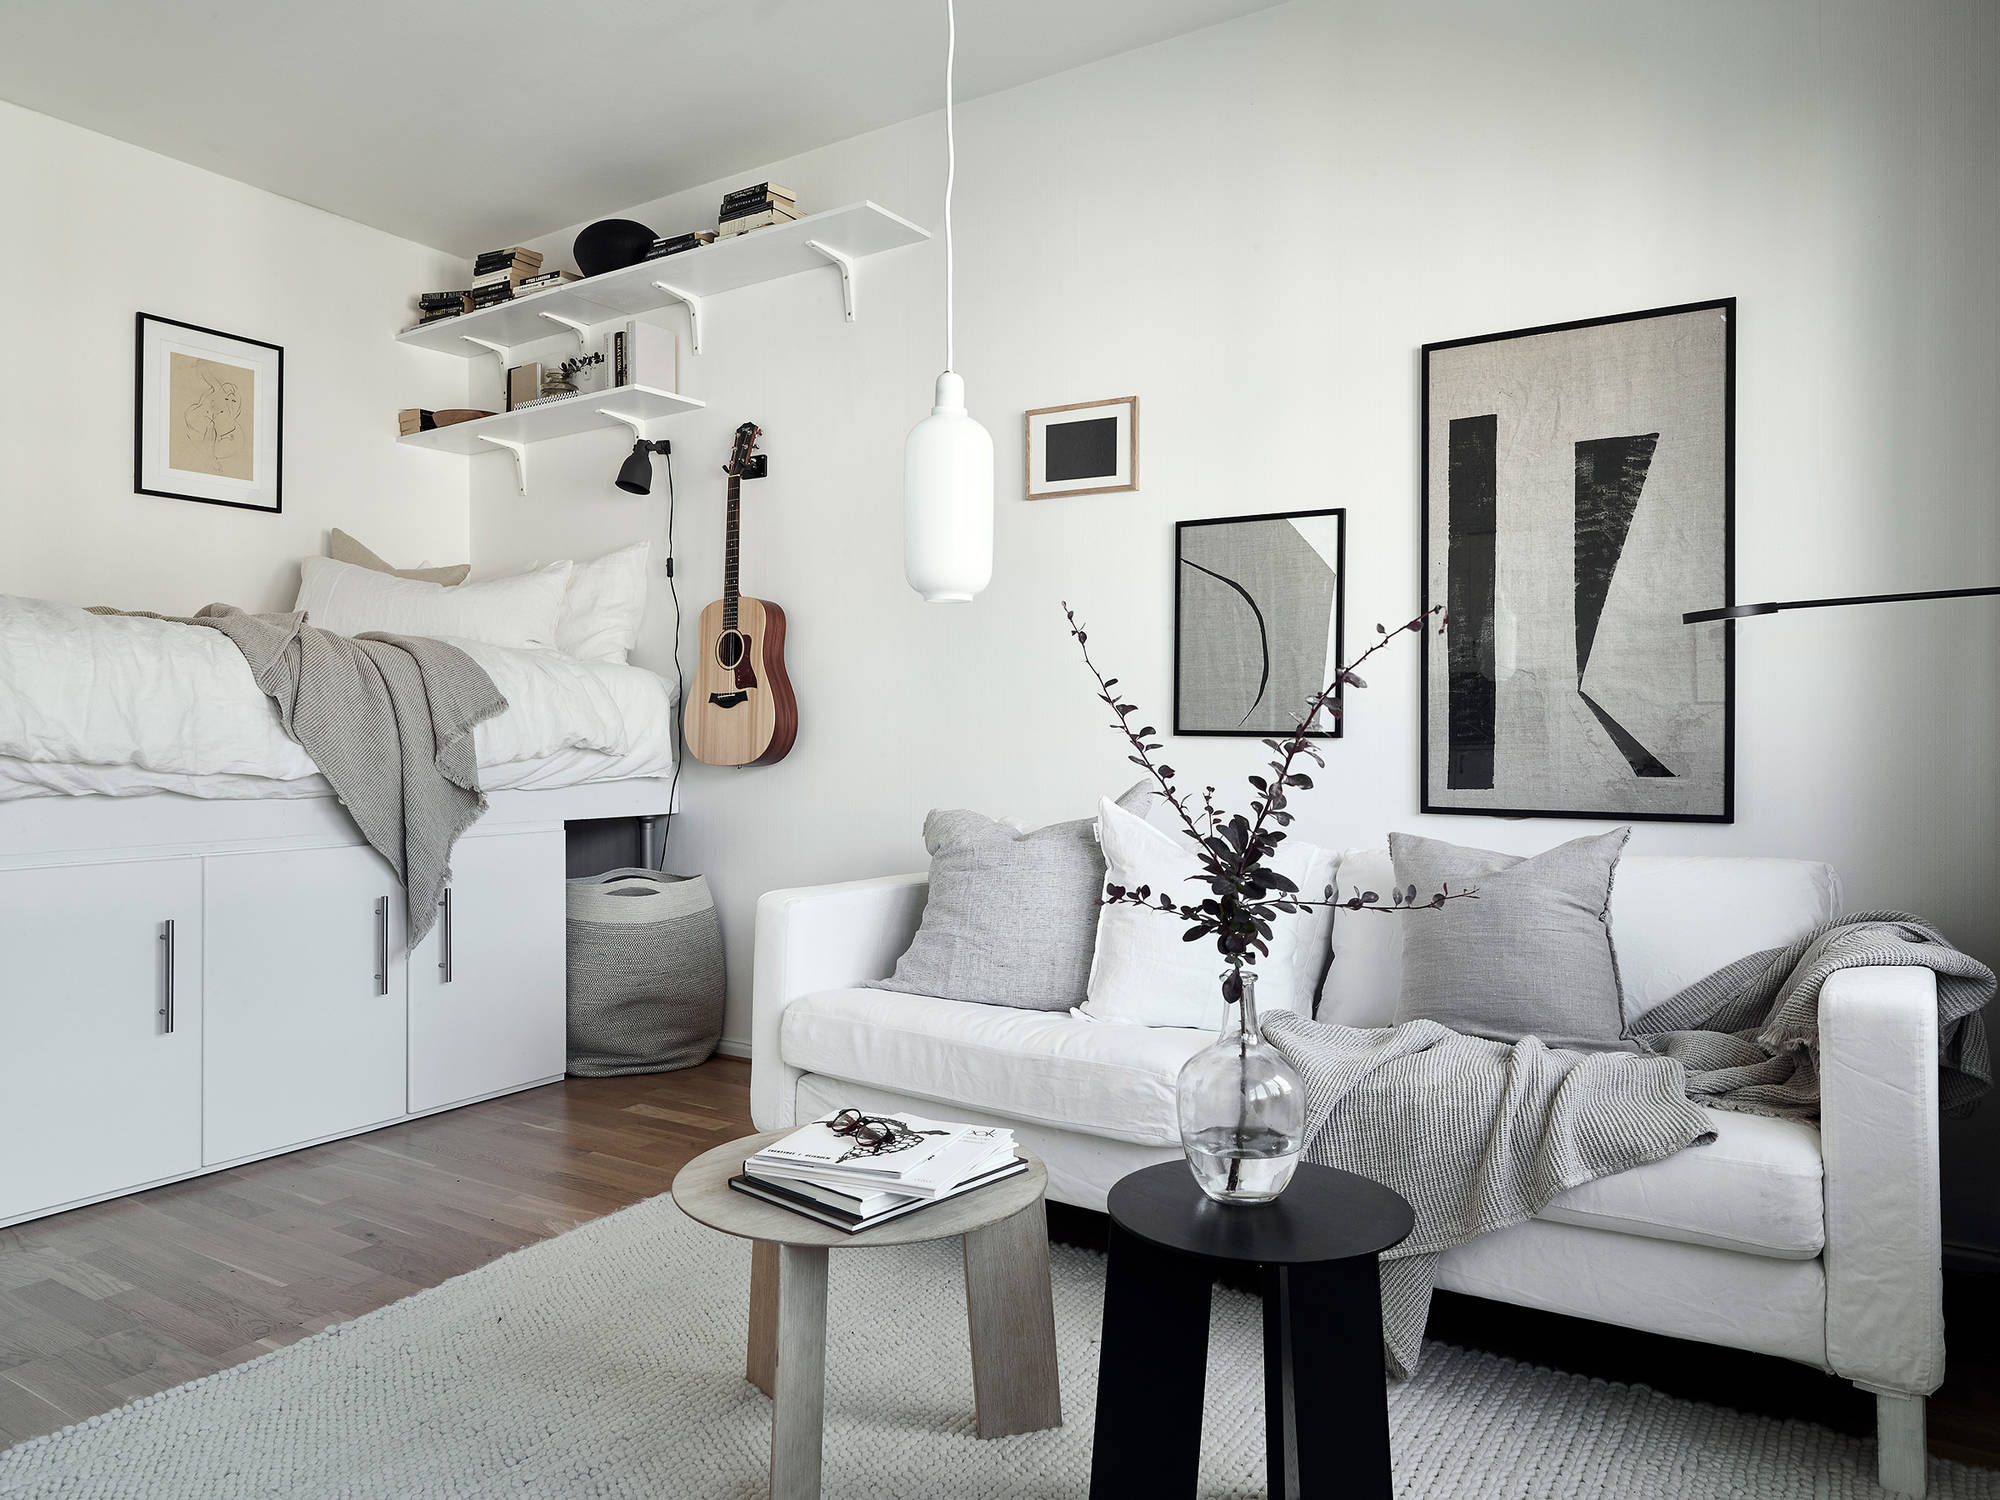 This Small Studio May Be Tiny In Square Meters, But Certainly Makes Up For  This In Style. Even Though The Decor Is Quite Minimal In Both Accessories  And ...